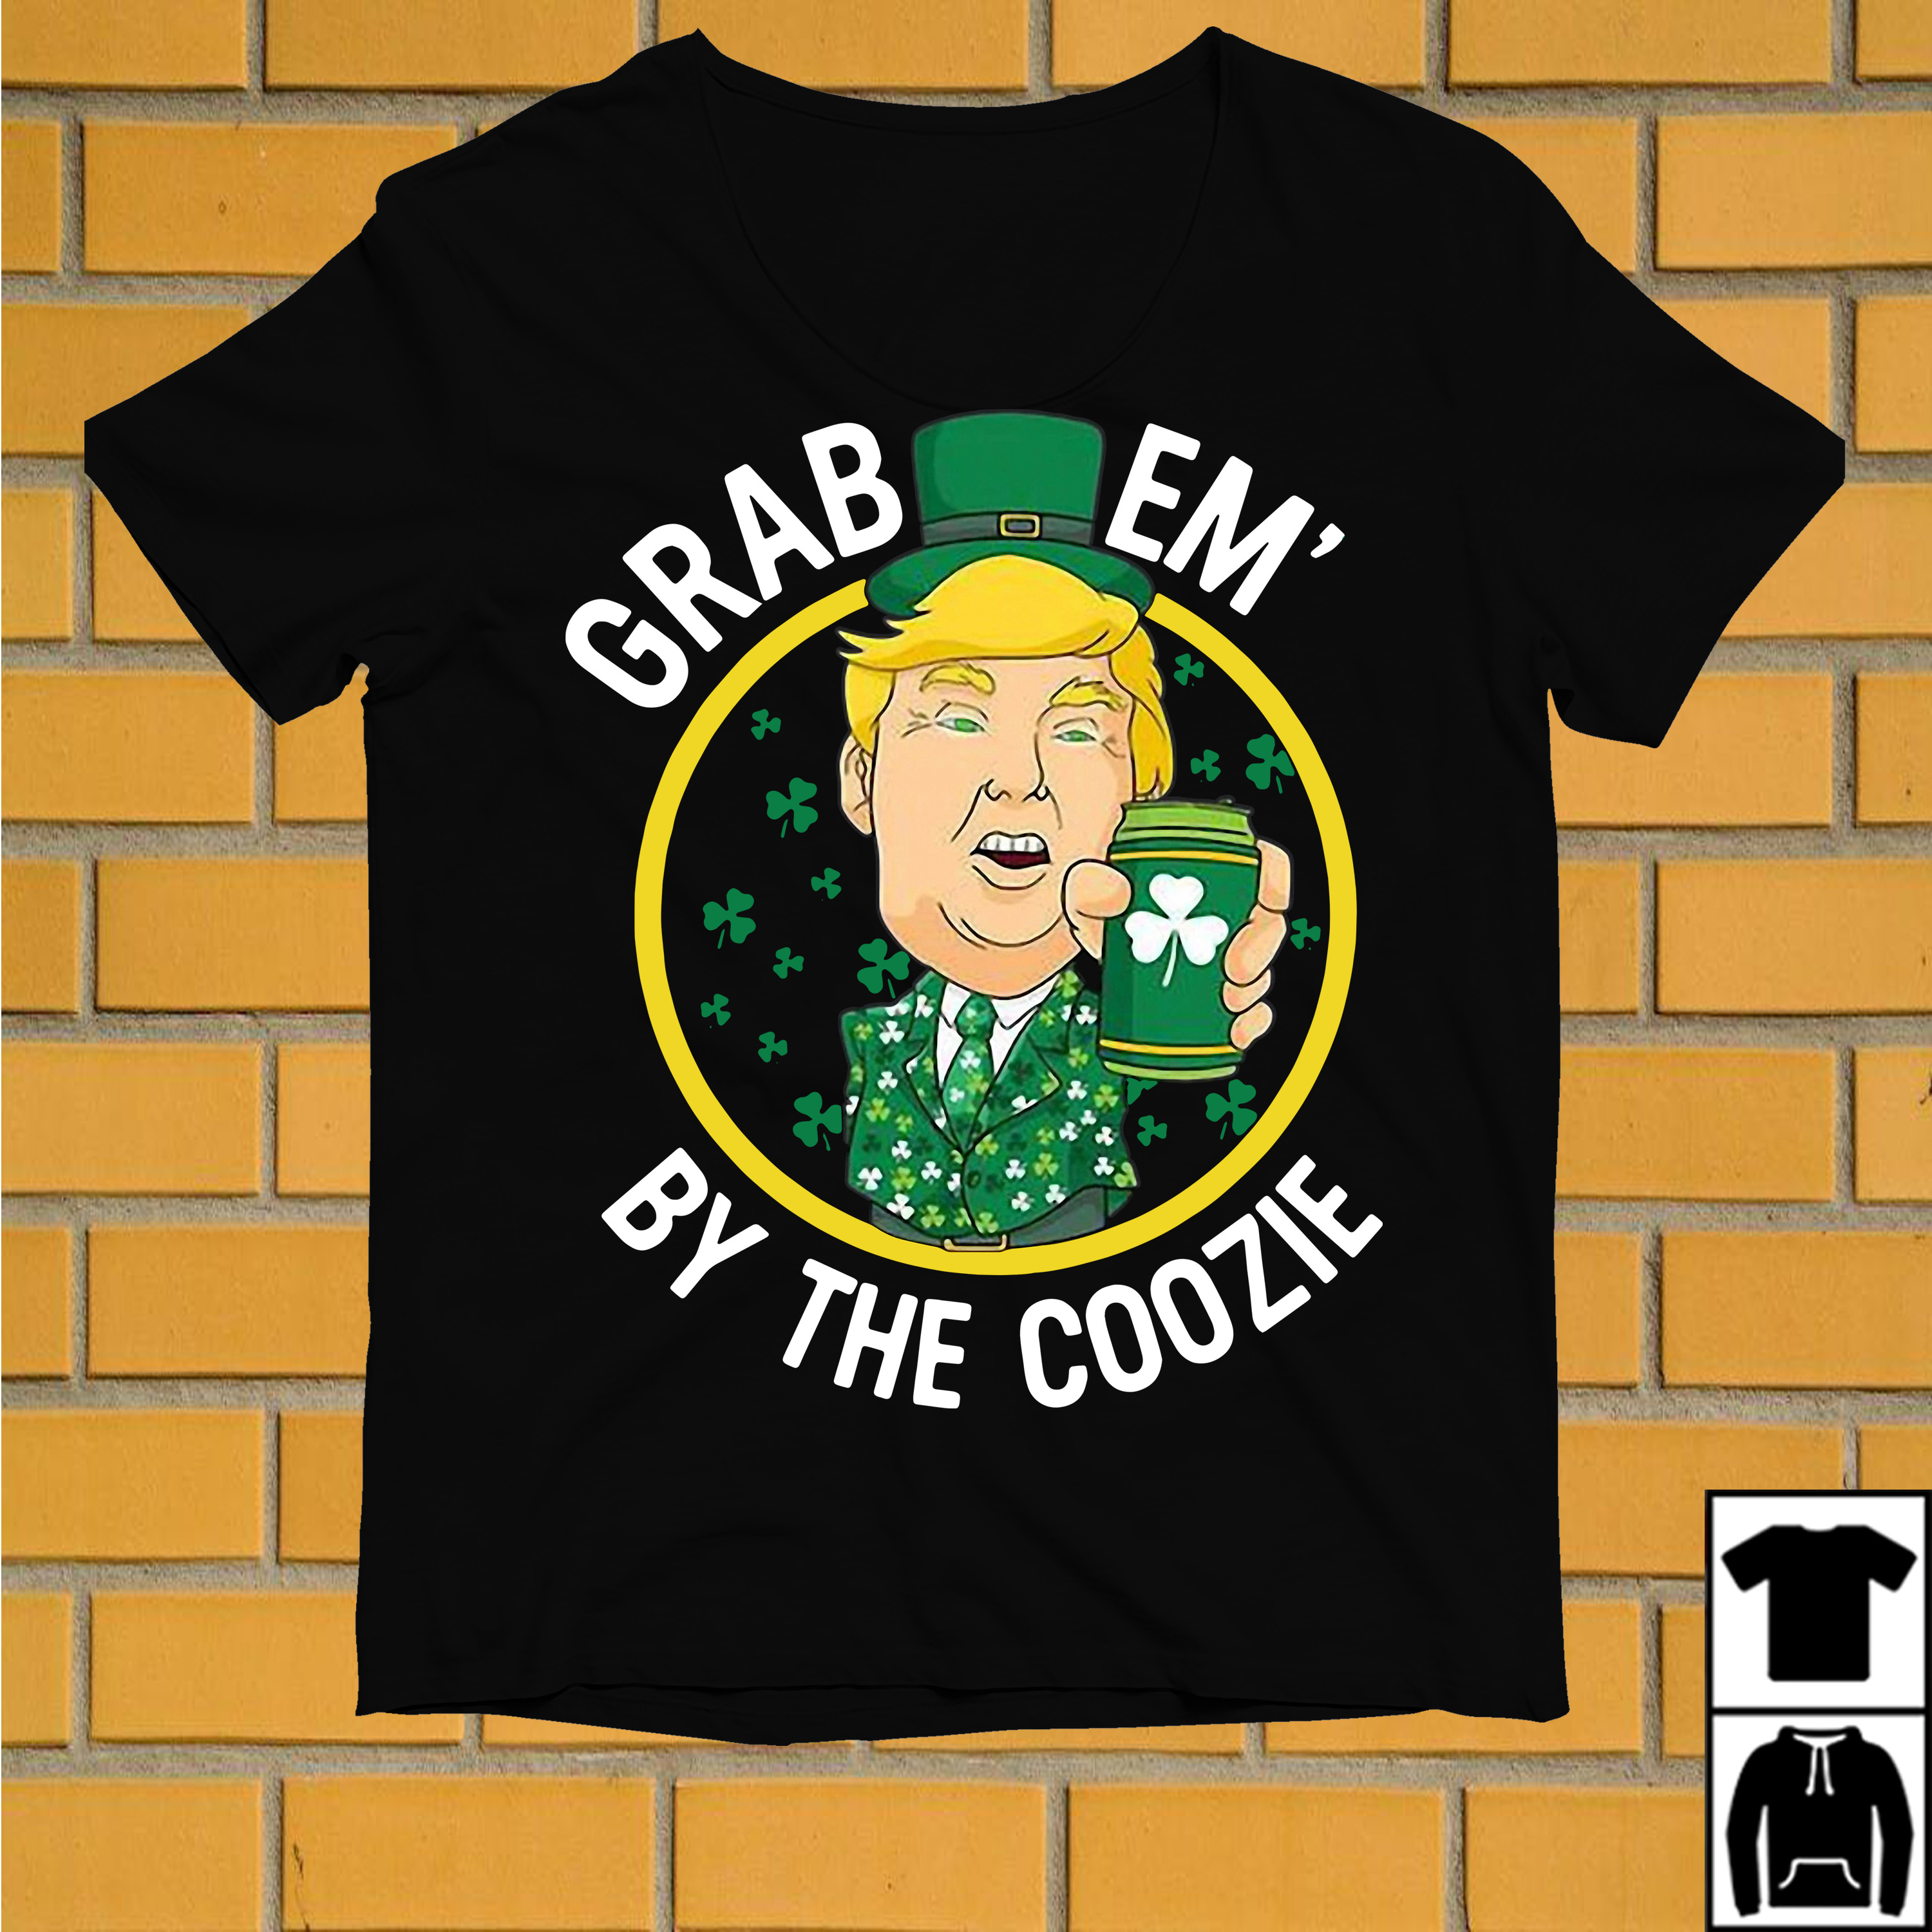 Irish Trump Beer grab em' by the coozie shirt